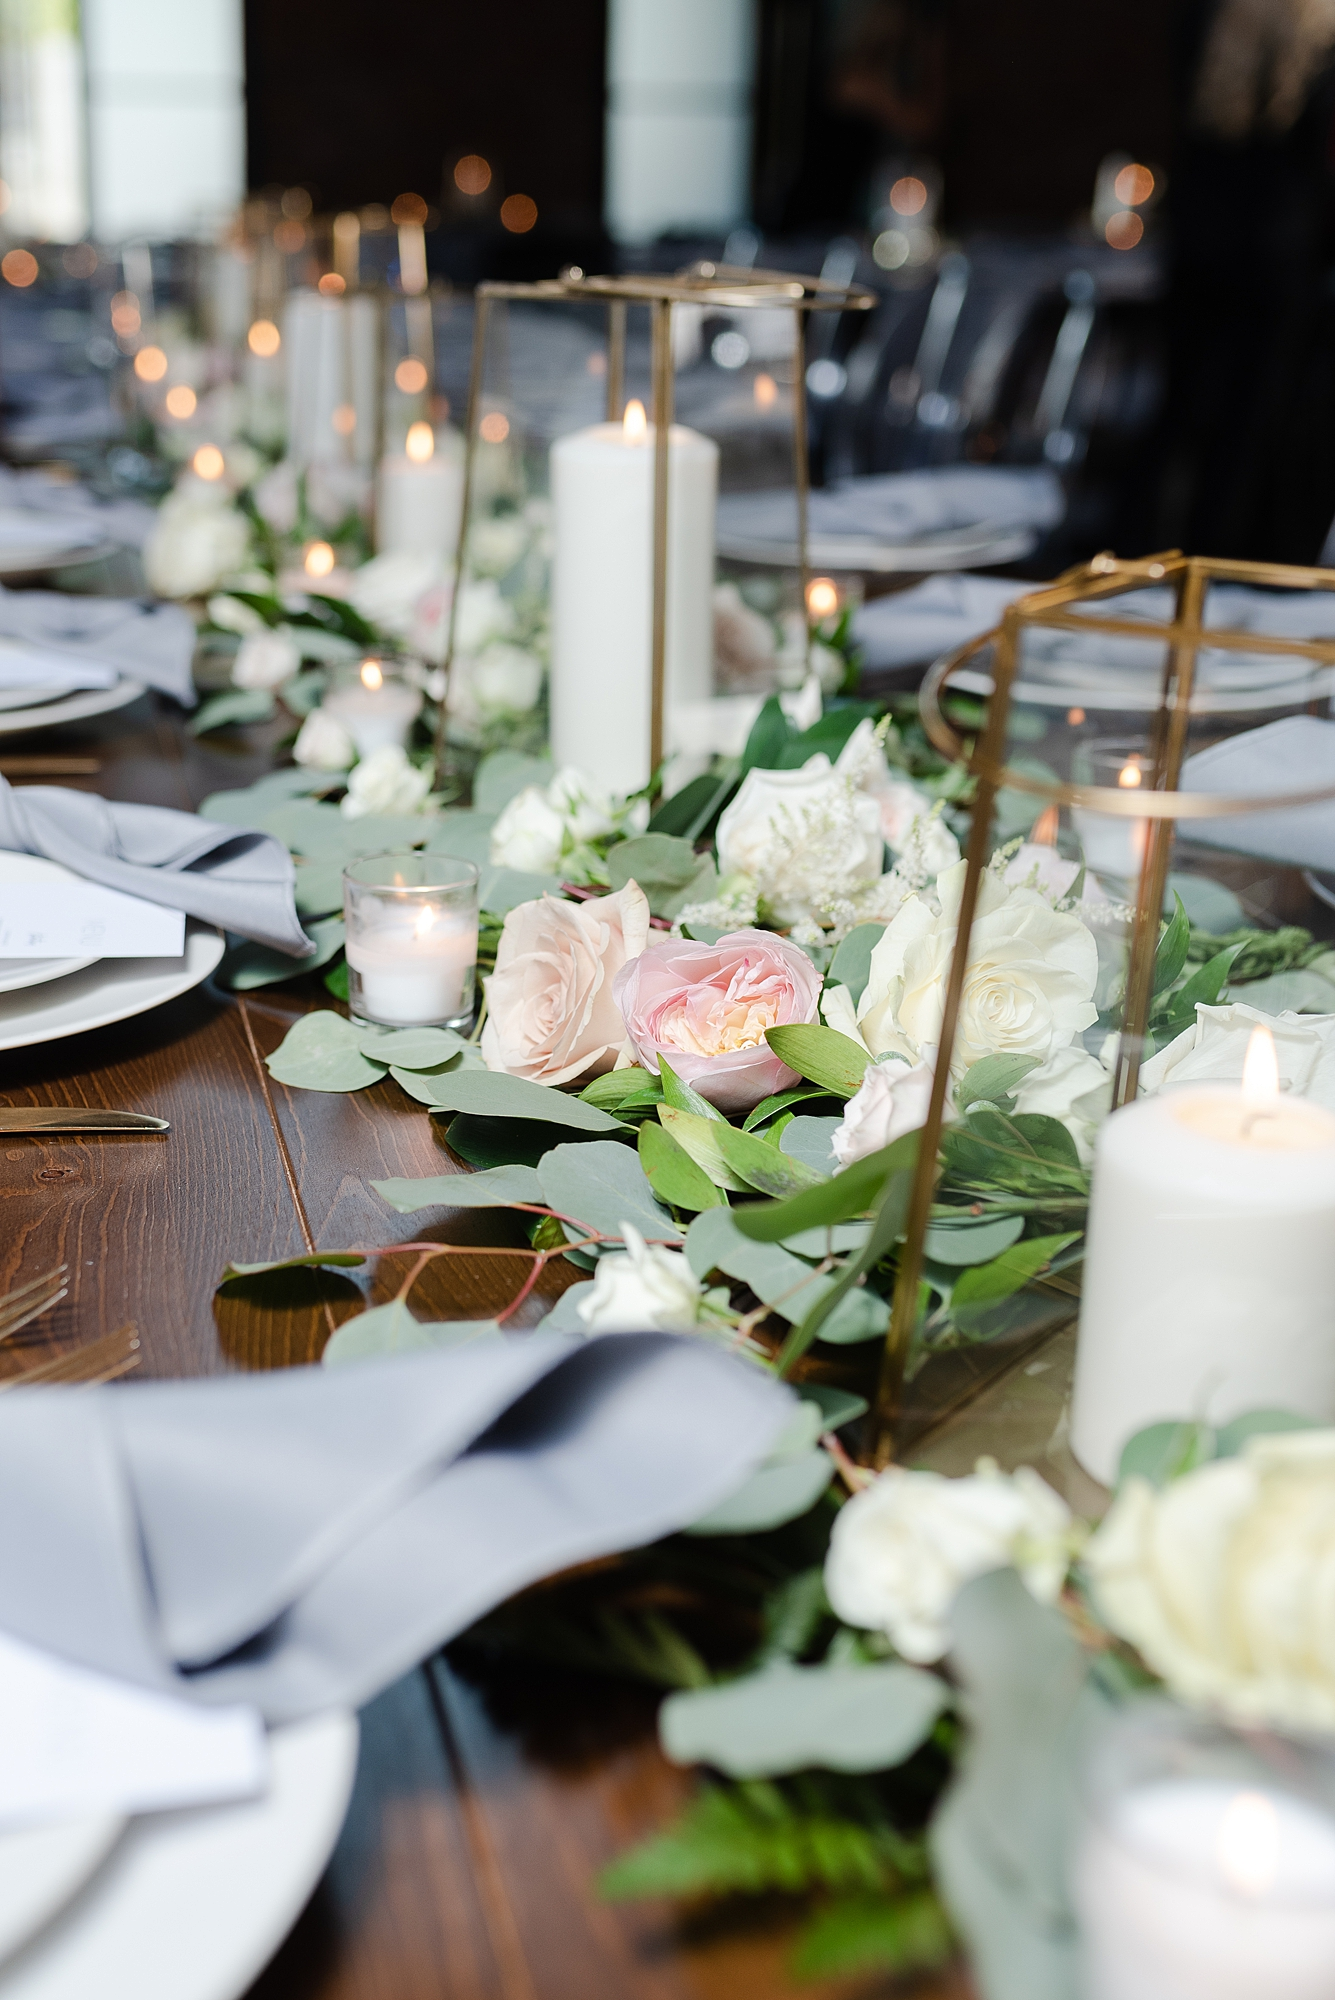 Wedding Centerpieces: Modern and Southern Wedding at the Clementine featured on Nashville Bride Guide